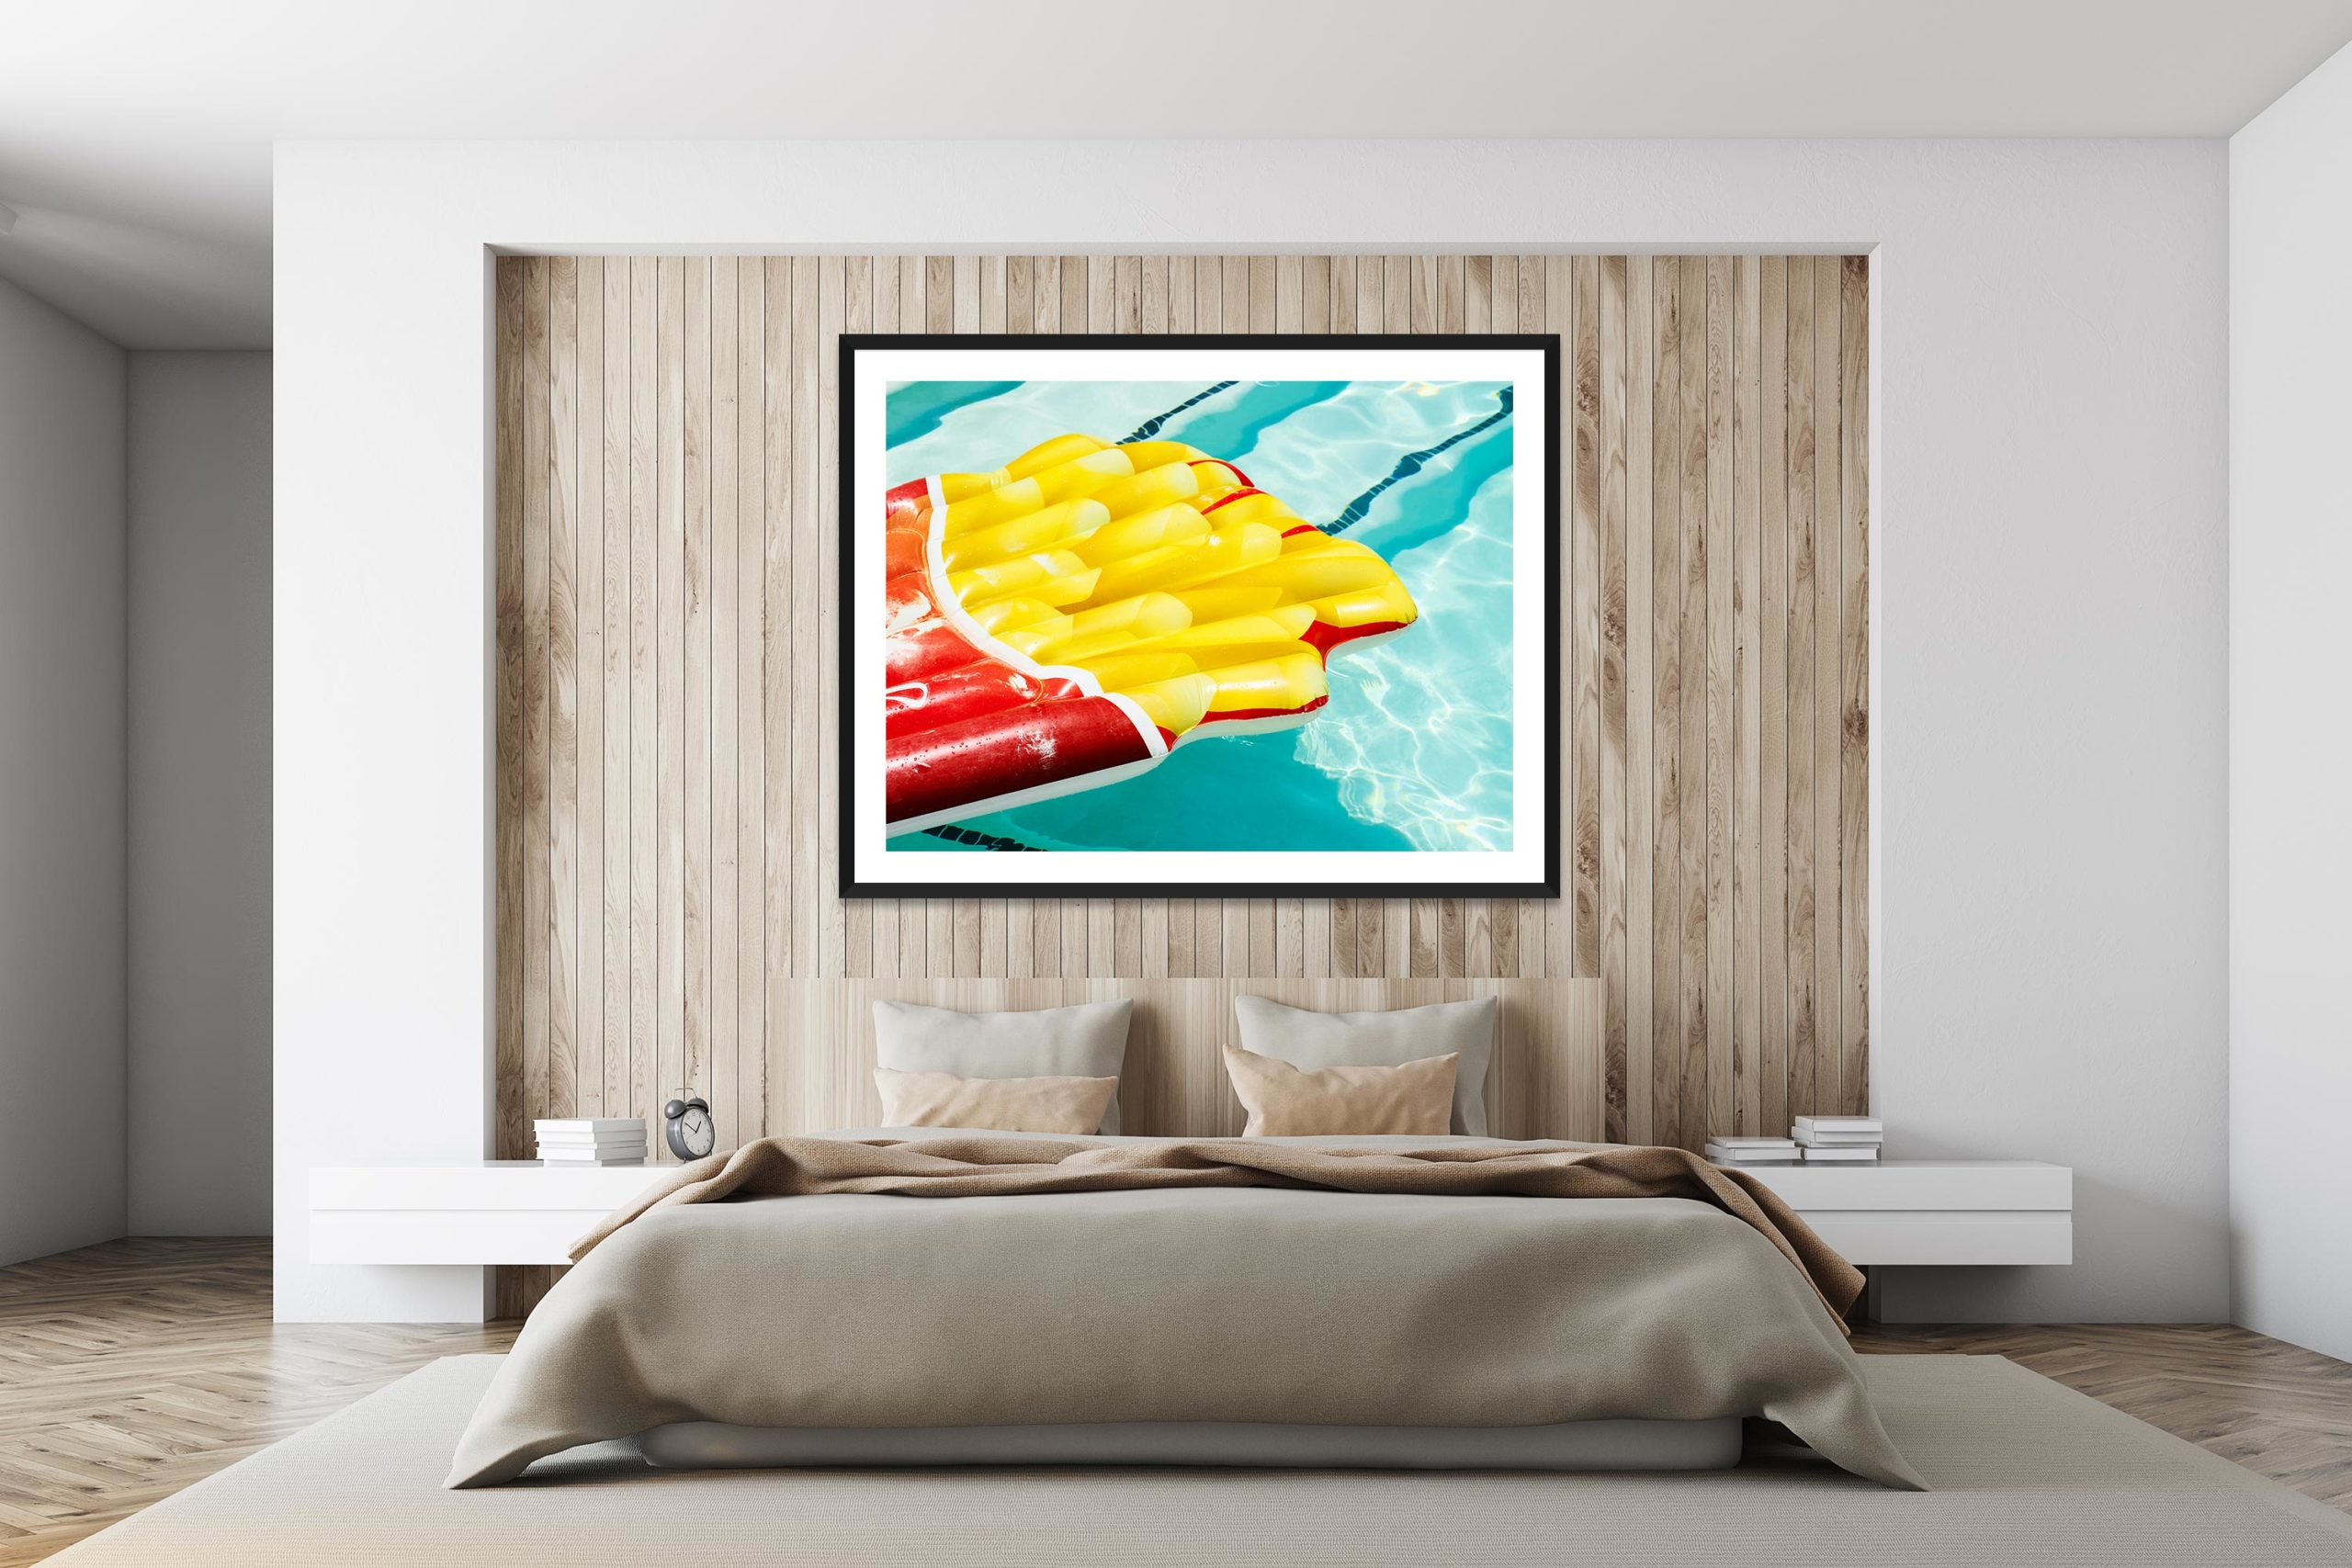 Fries - Black Frame - I Heart Palm Springs Collection - Fine Art Photography by Toby Dixon